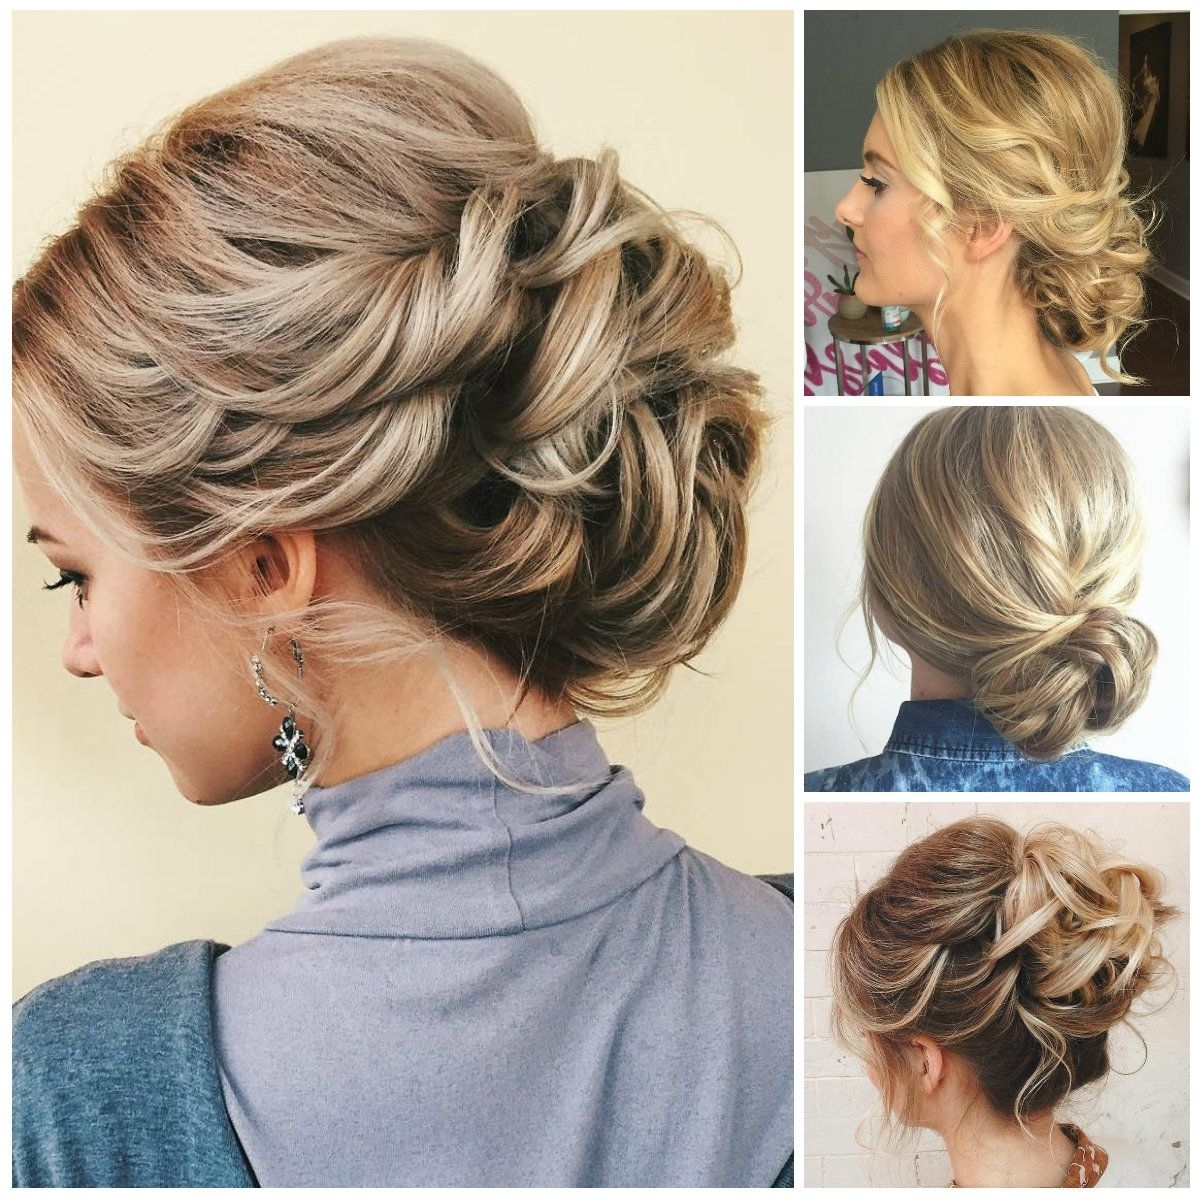 Image Result For Upstyles 2017 | Upstyles Wedding | Pinterest | Thin In Soft Updo Hairstyles For Medium Length Hair (Gallery 3 of 15)